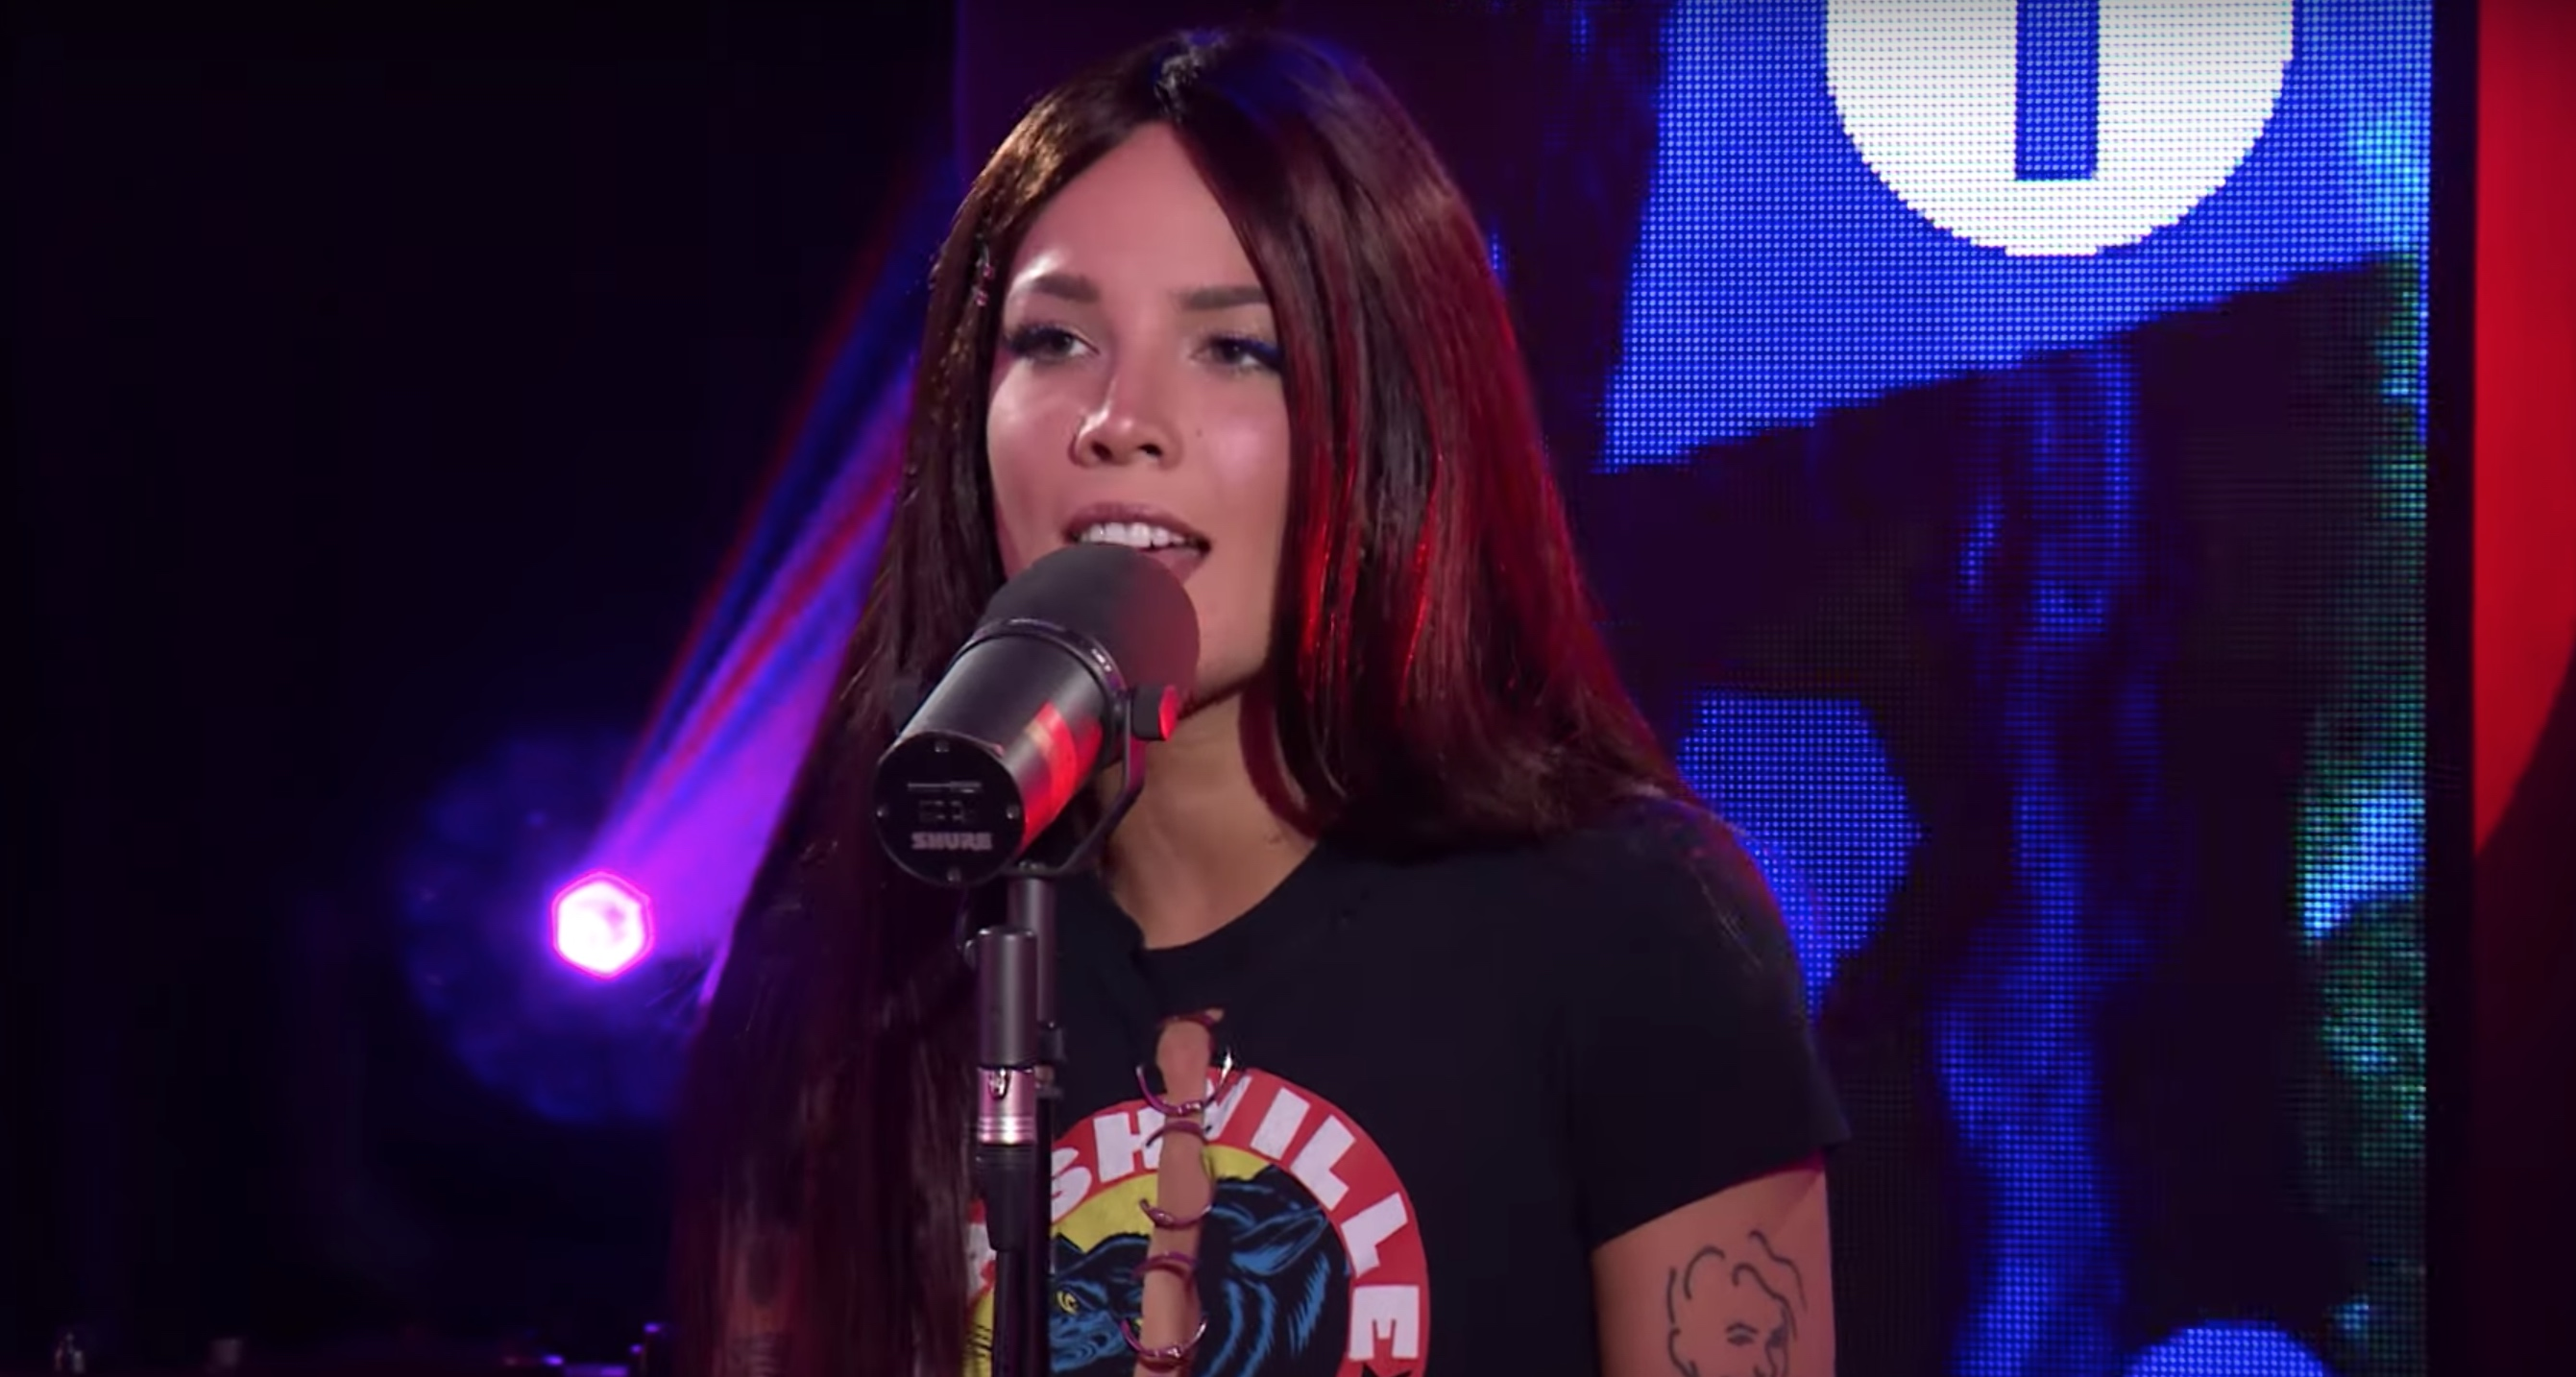 That Time Halsey Covered Sucker by The Jonas Brothers